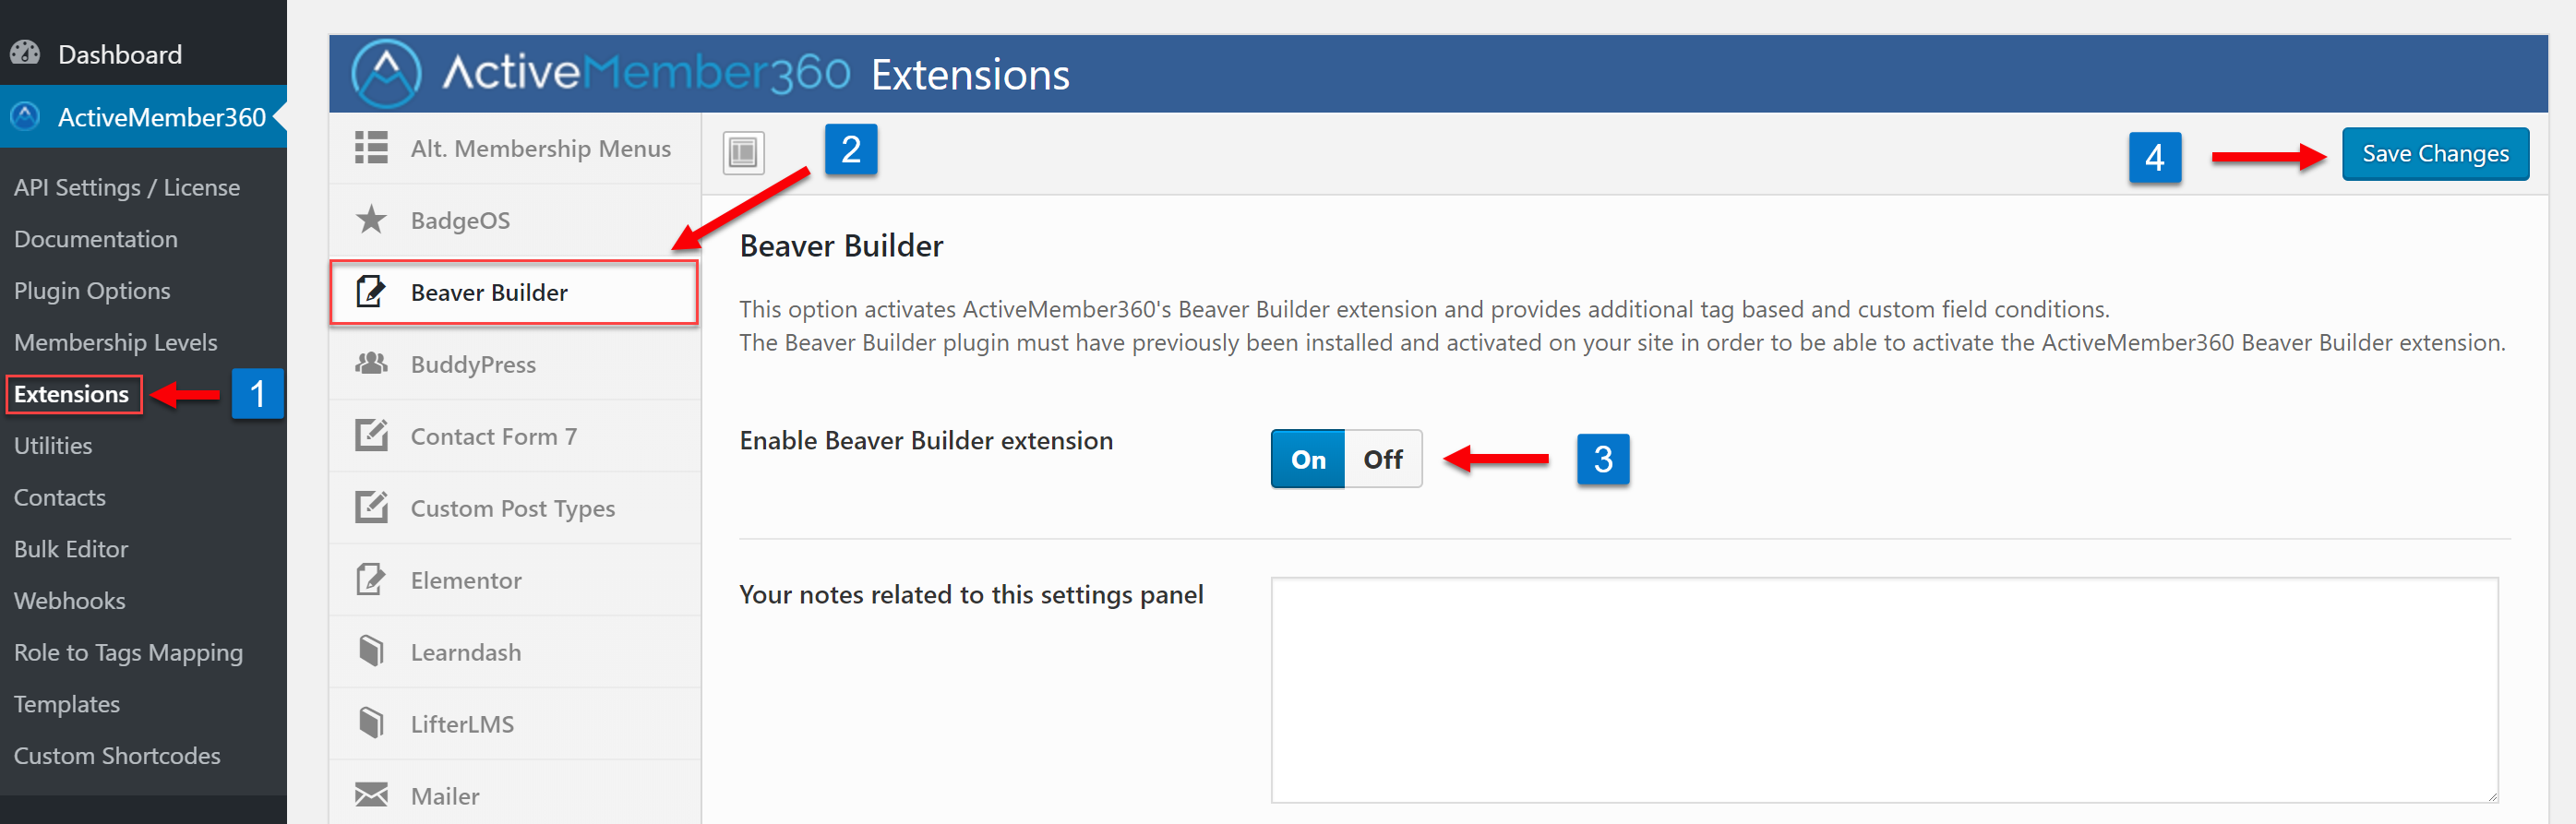 Enabling the Beaver Builder Extension